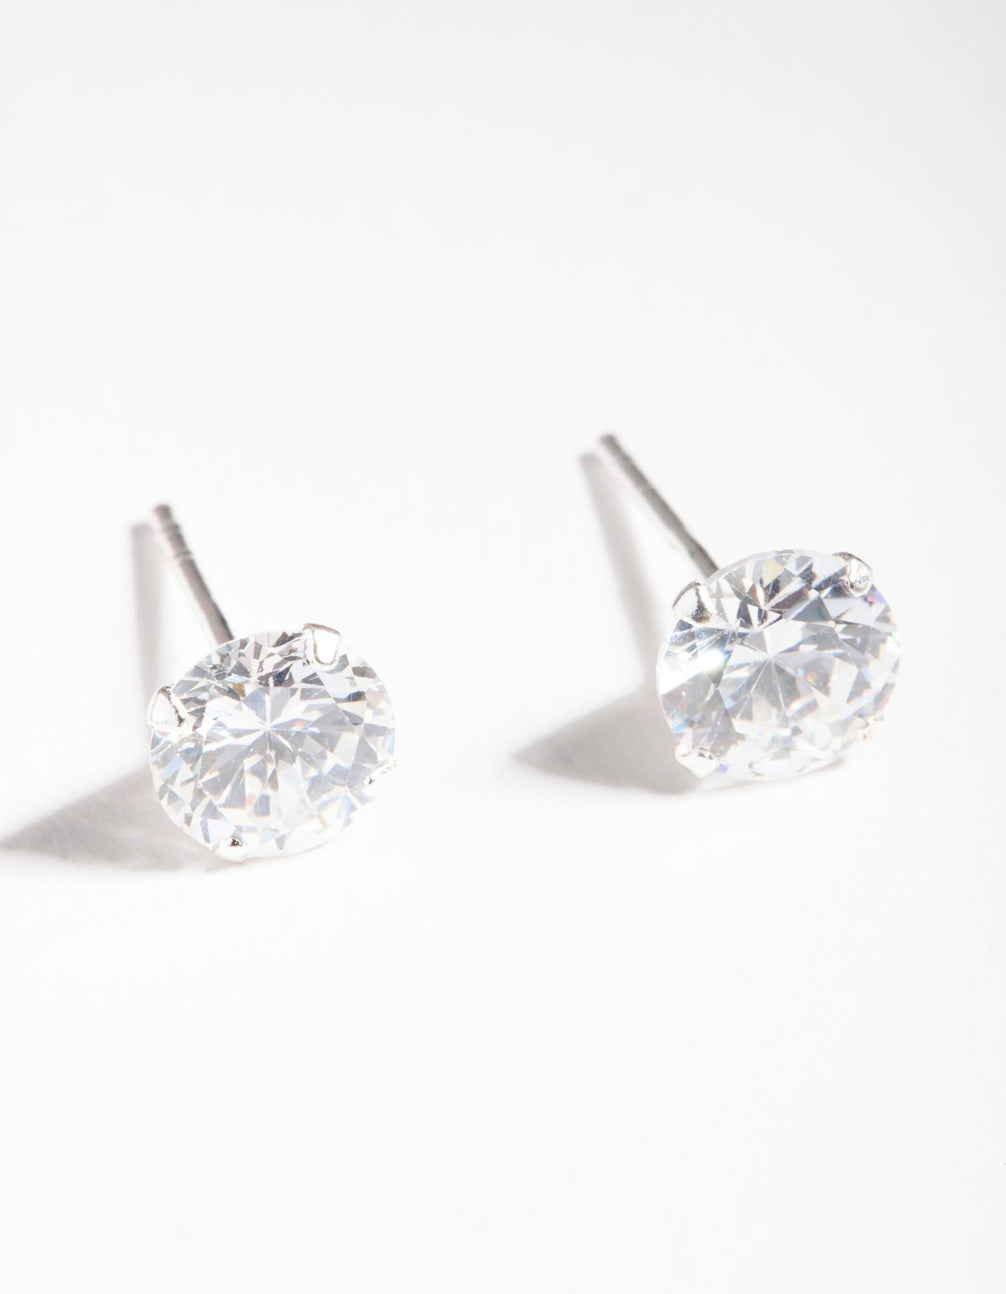 6.5mm Diamond Simulant Stud Earrings